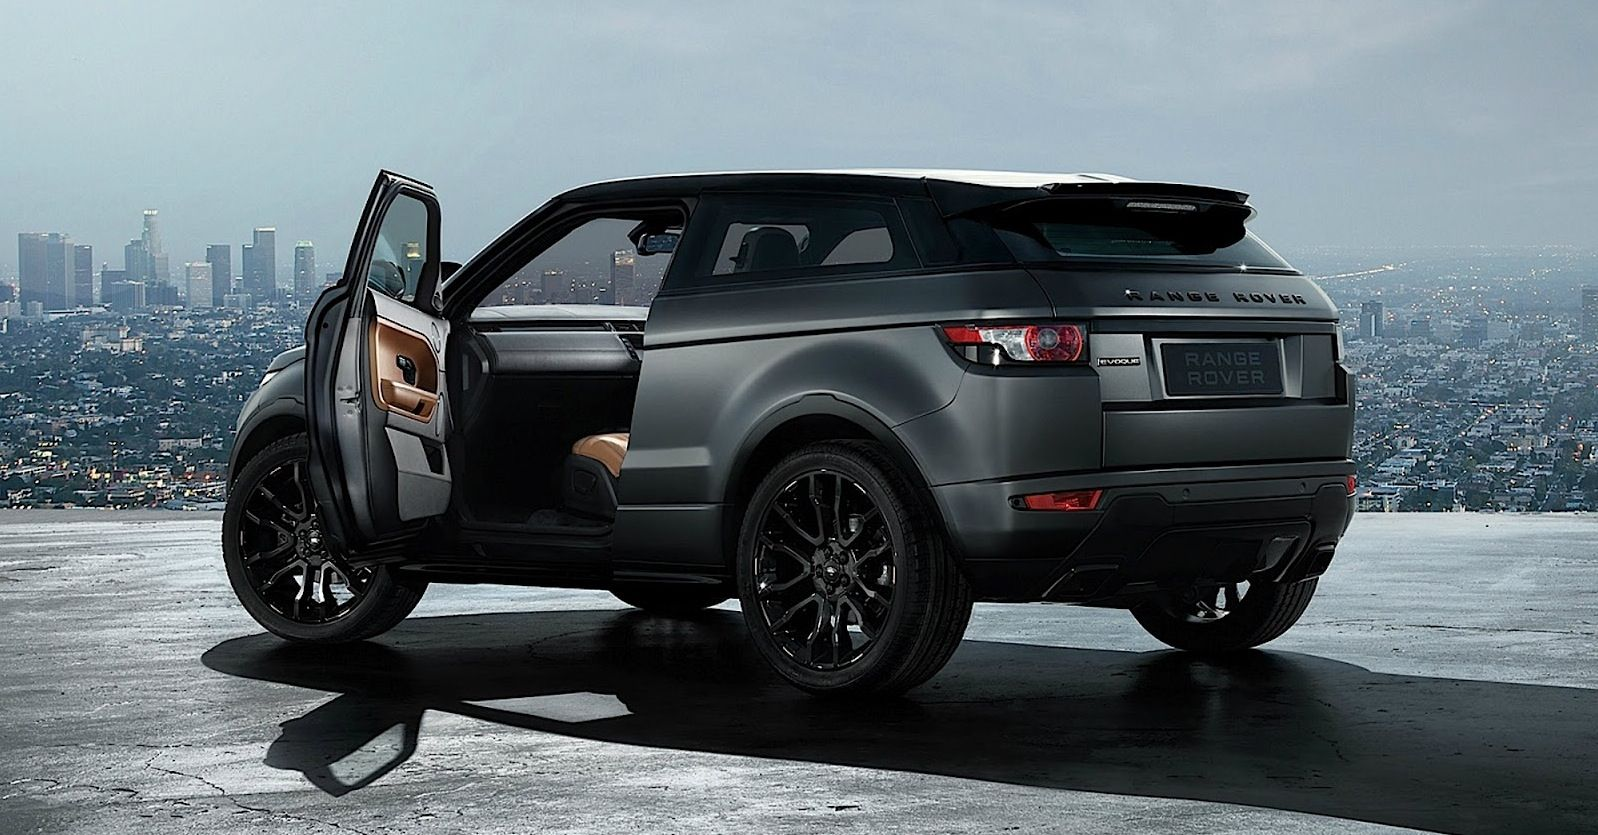 Information about land rover range rover evoque here you can find all modifications watch land rover range rover evoque photos and find parameters